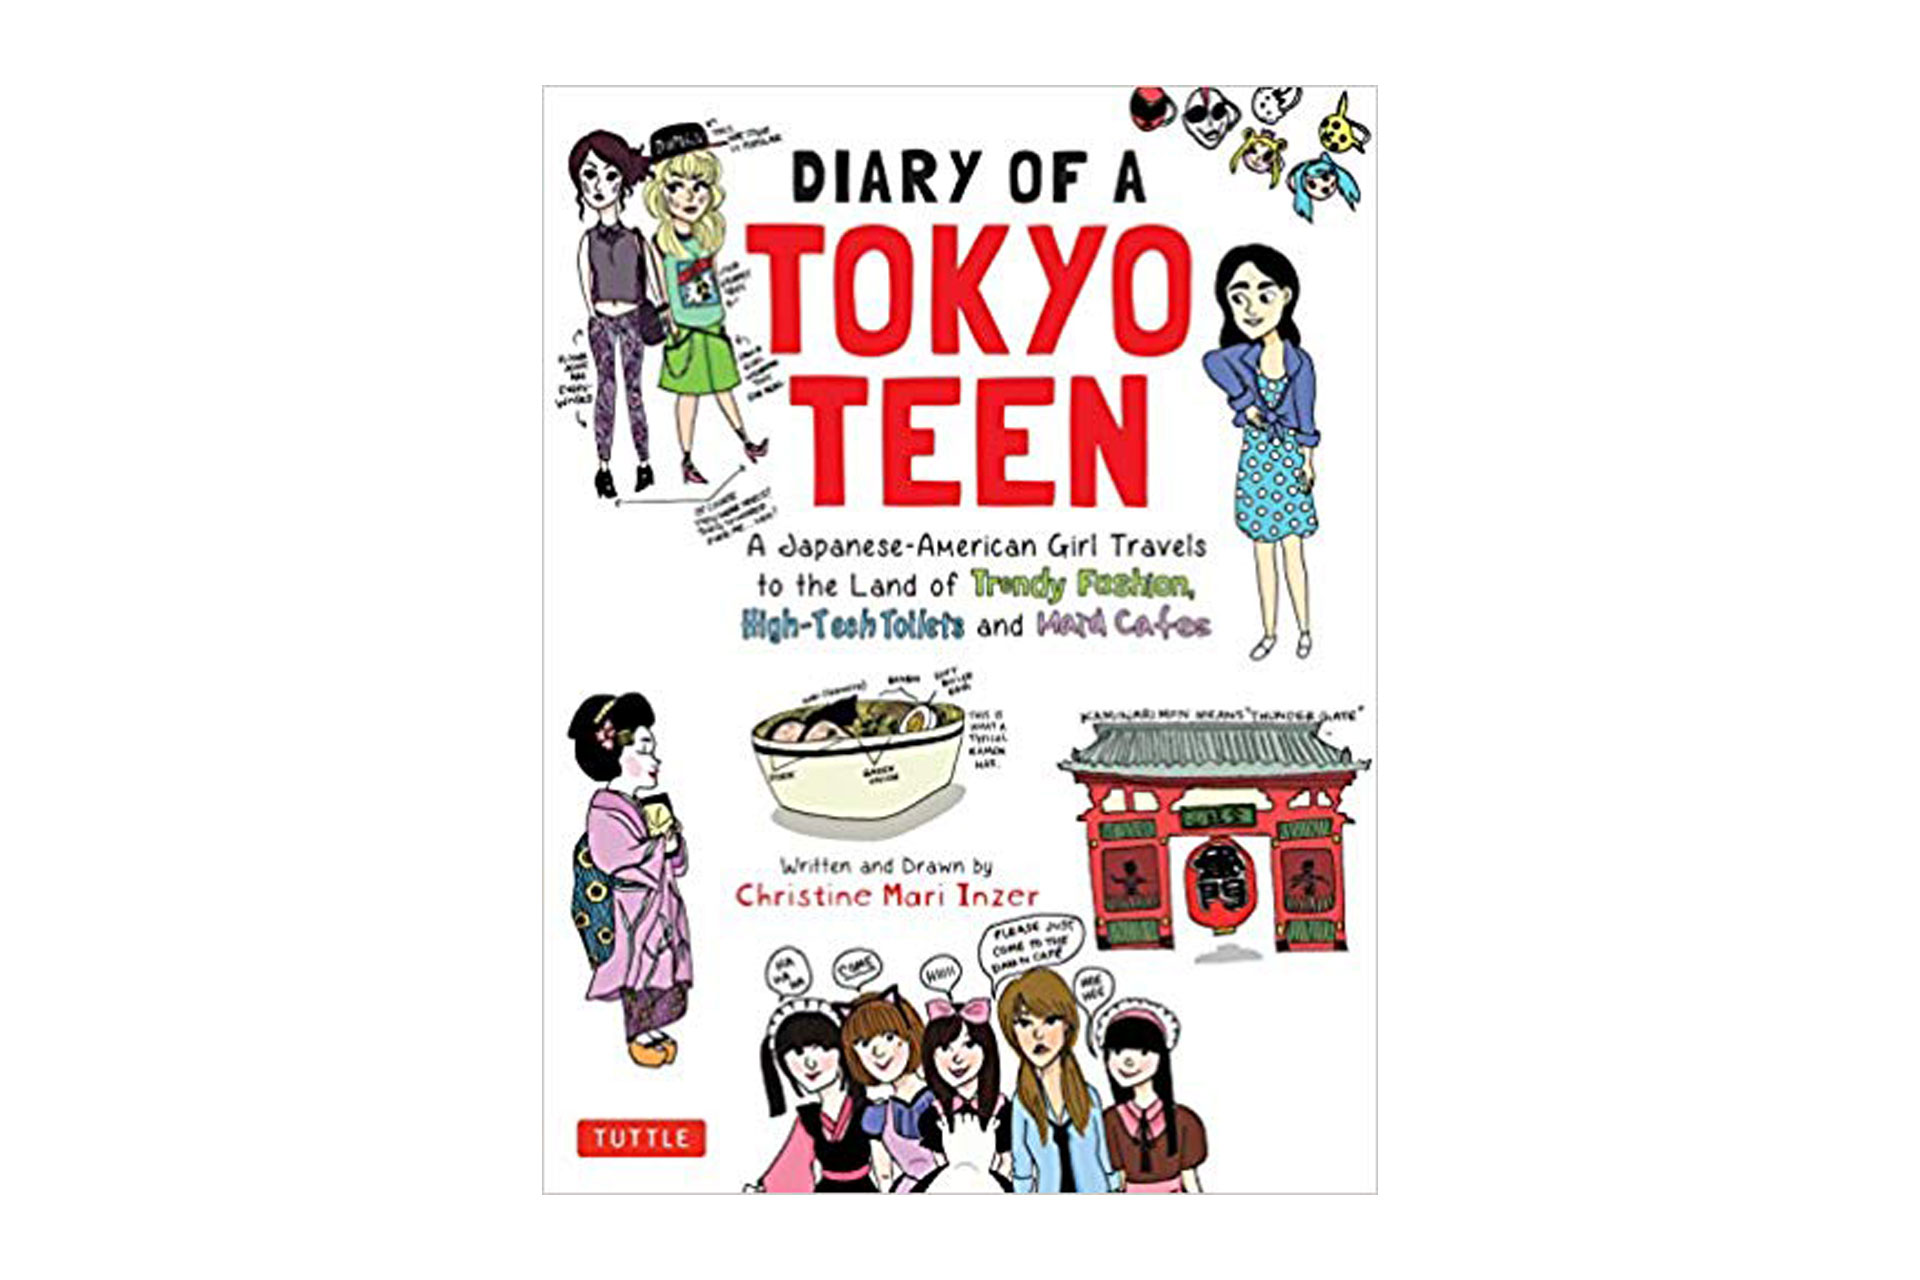 Diary Of a Tokyo Teen Book; Courtesy of Amazon